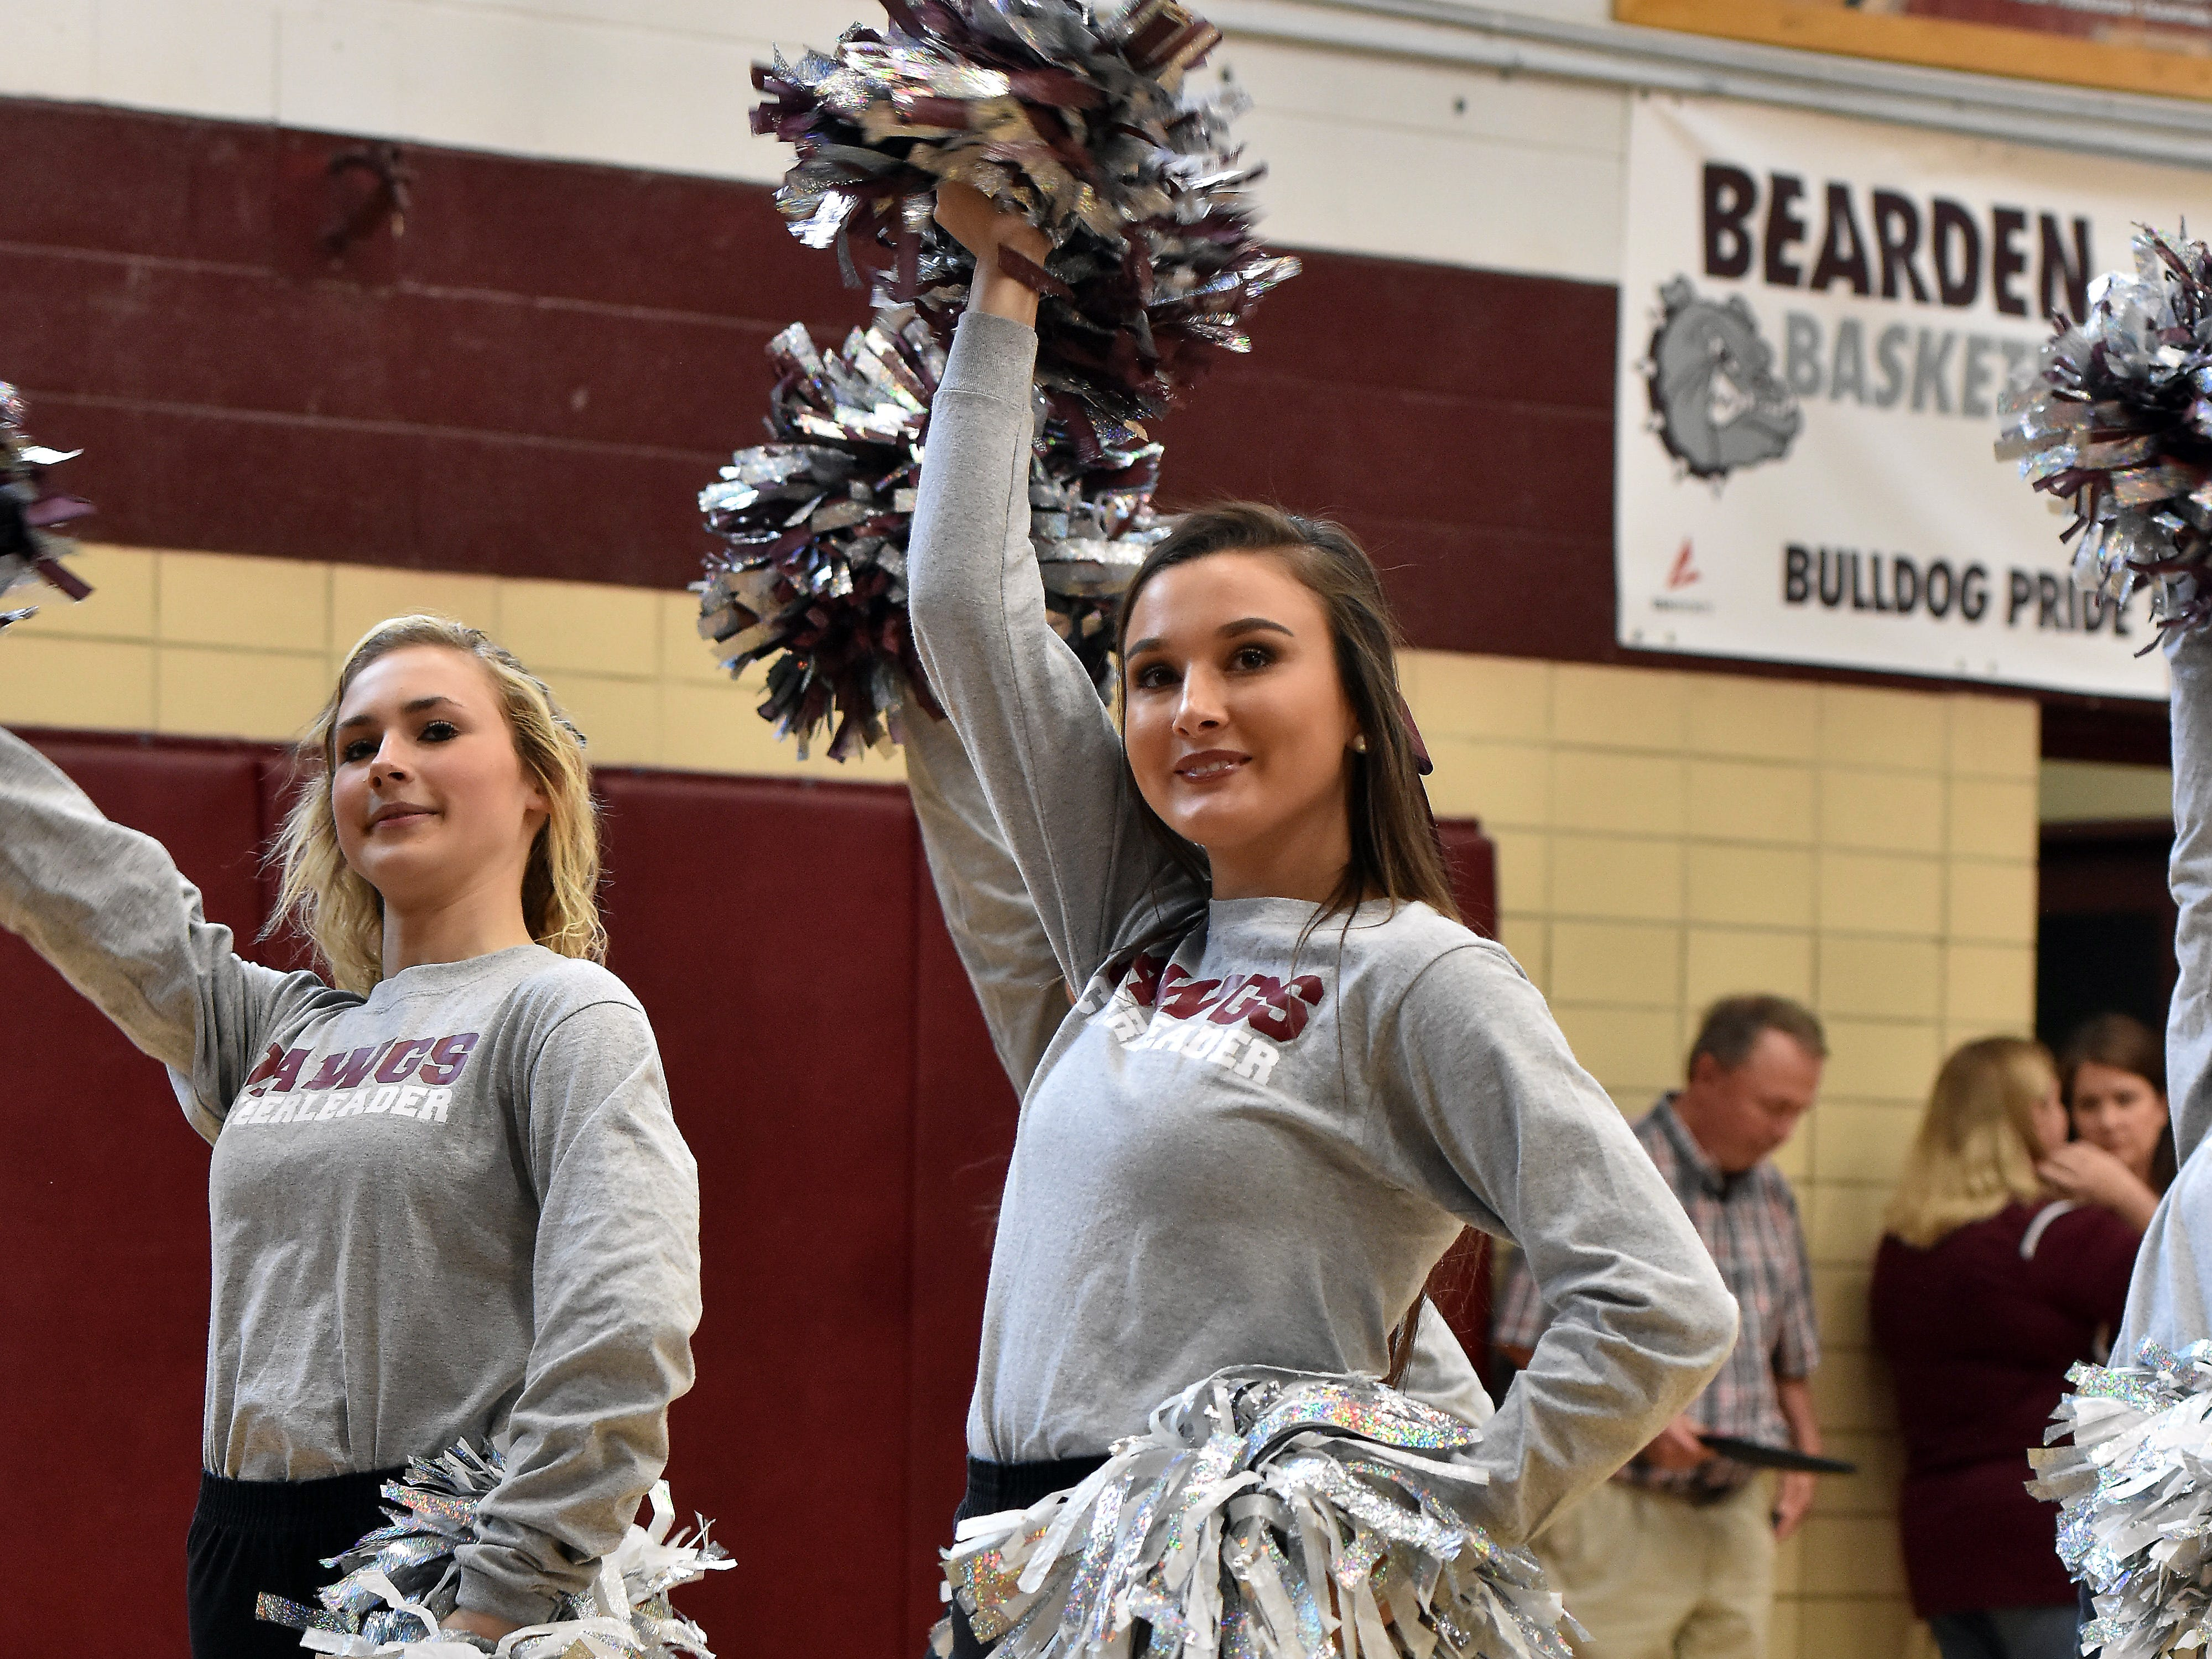 The Bearden High cheerleaders performed to the school fight song during the pep rally honoring the boys basketball team winning the state championship on Friday, March 29.